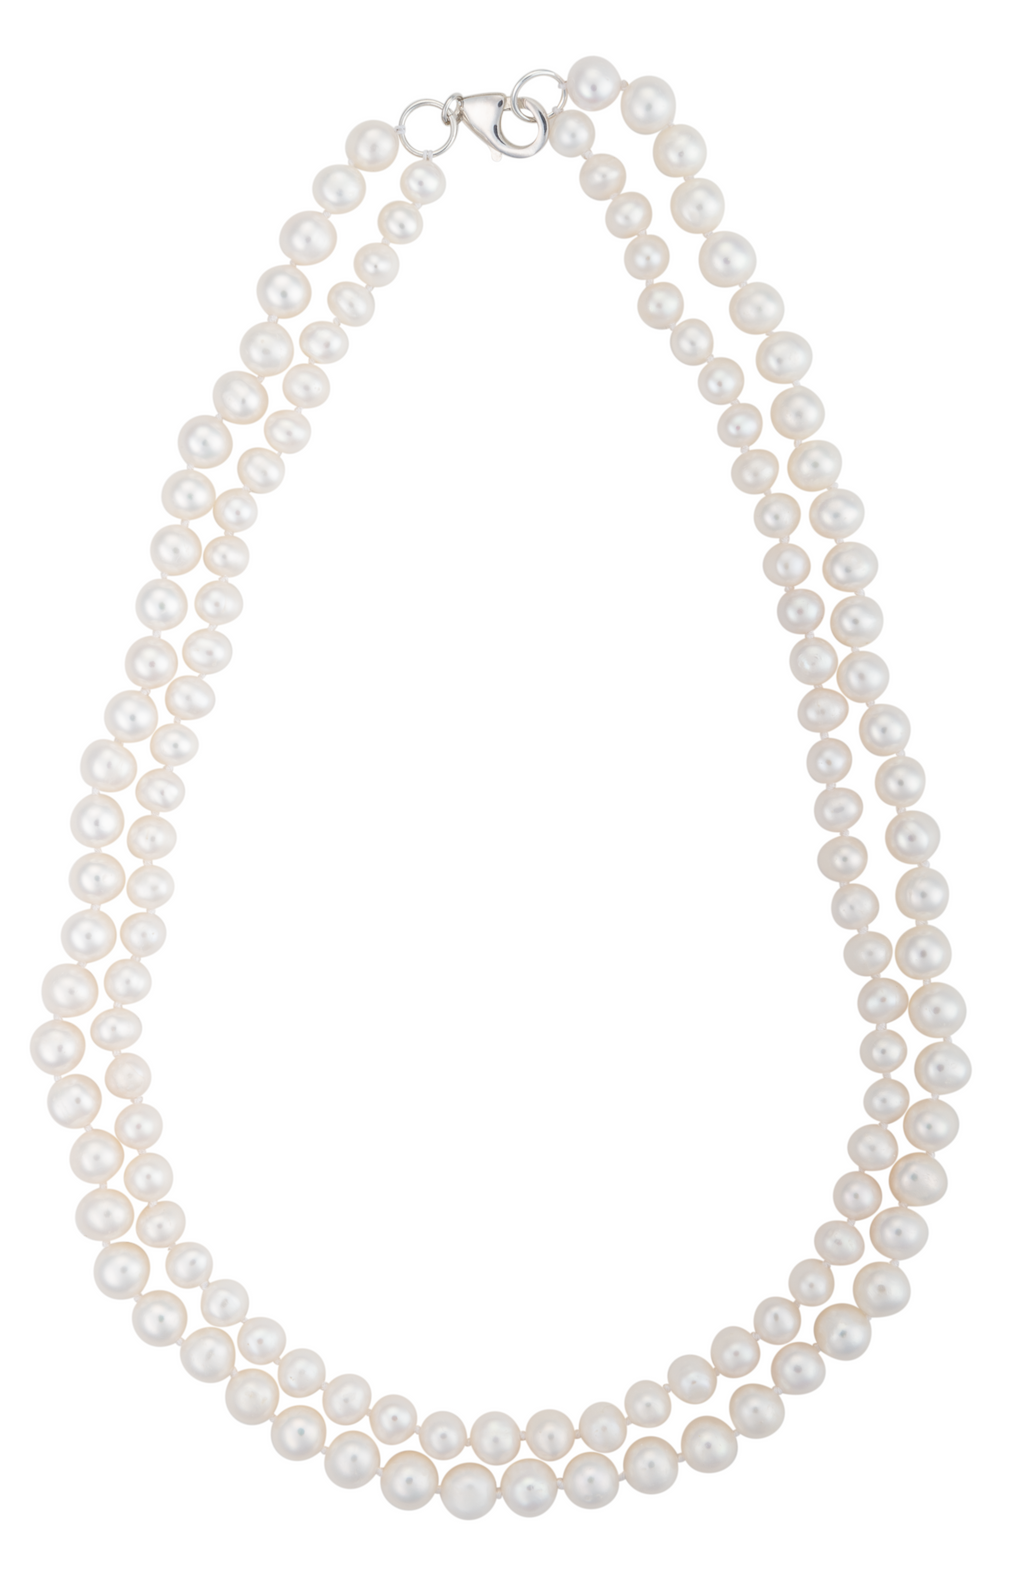 An image of a graduated double-strand white freshwater cultured pearl necklace